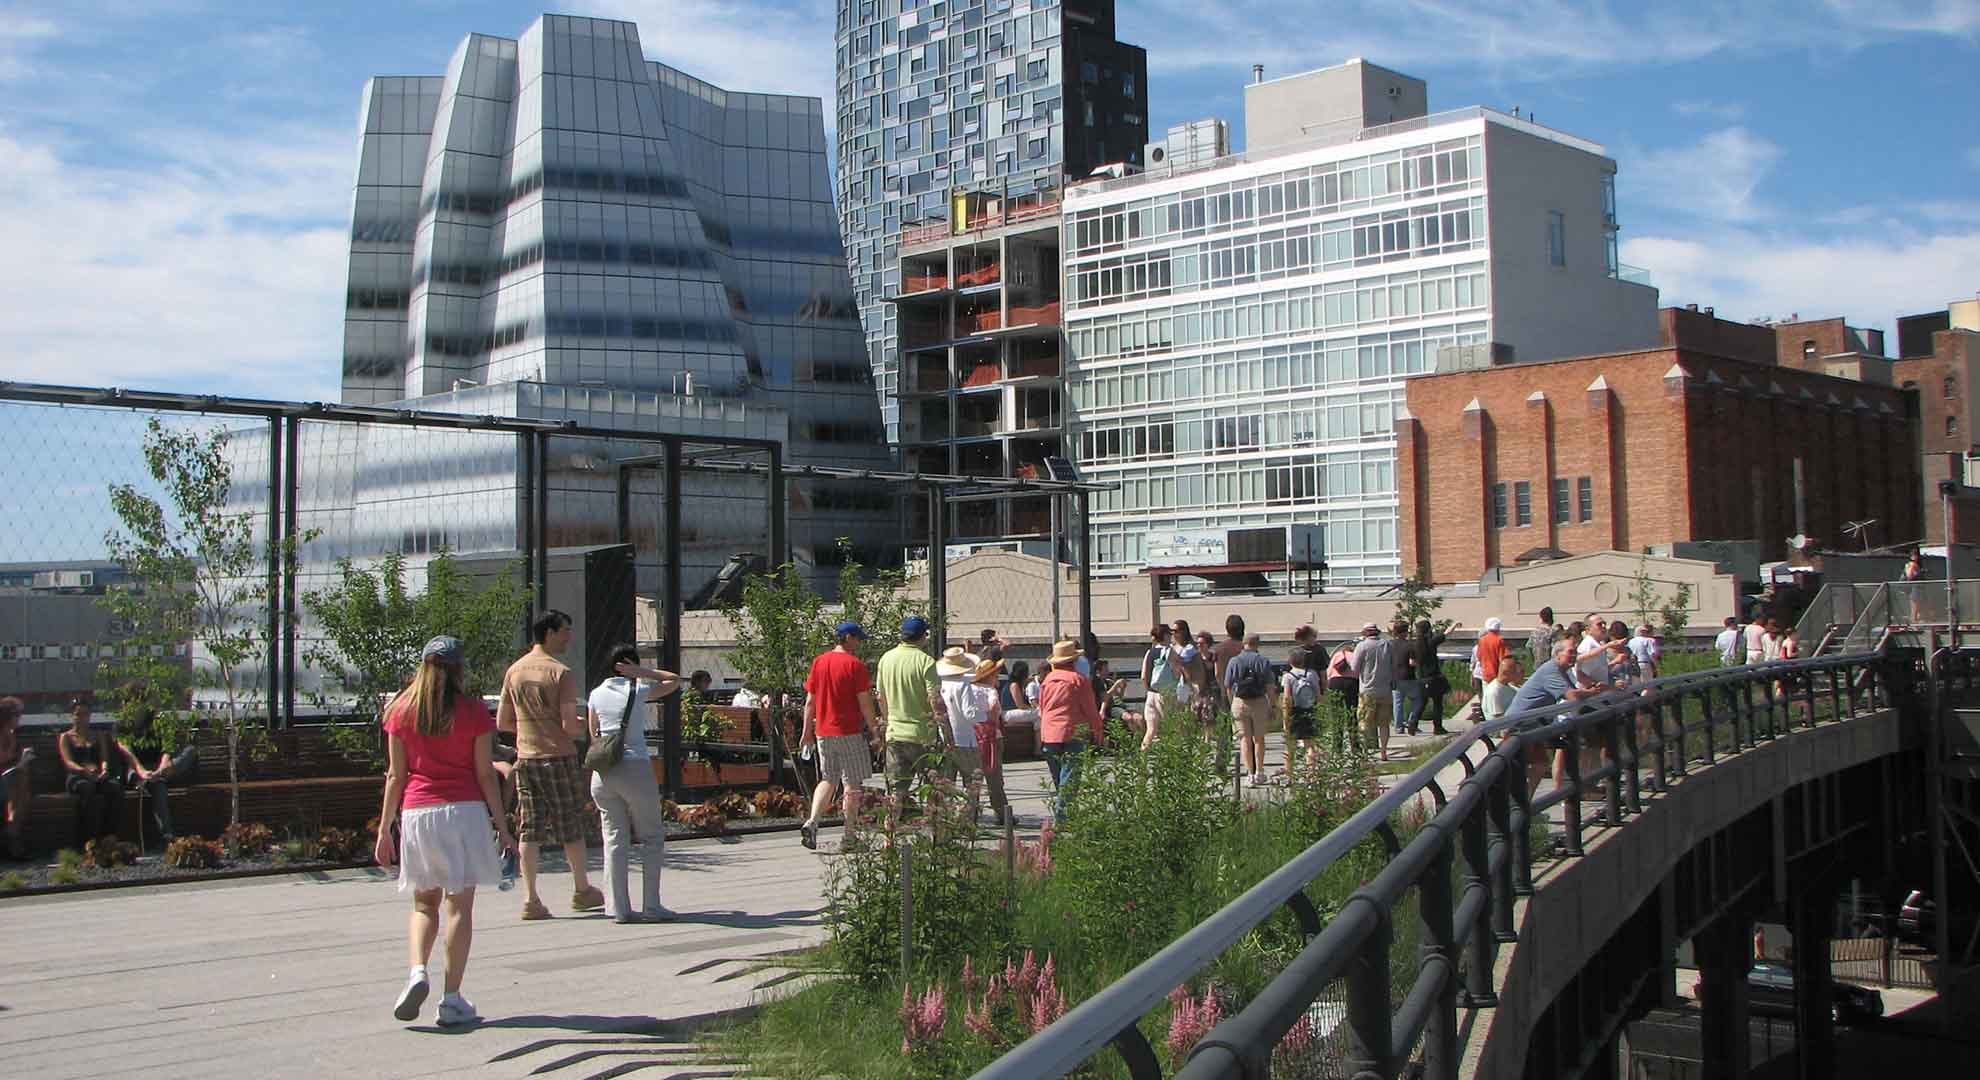 Green spaces have shown a positive impact on health